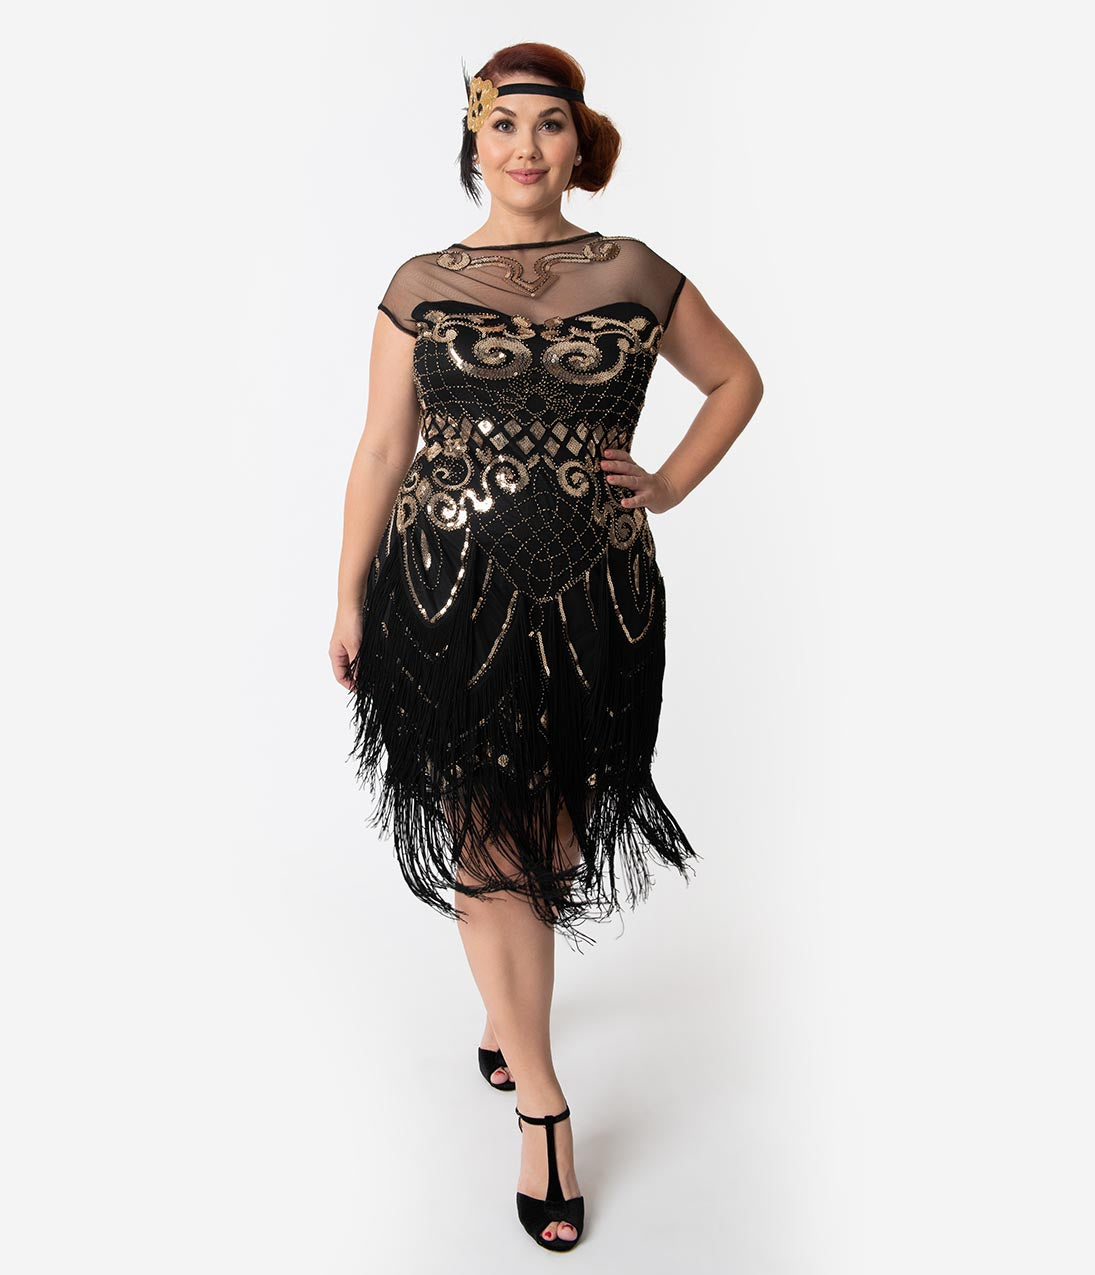 0cf6c0c93a6 Unique Vintage Plus Size 1920s Black & Gold Sequin Fringe Zulla Flapper  Dress